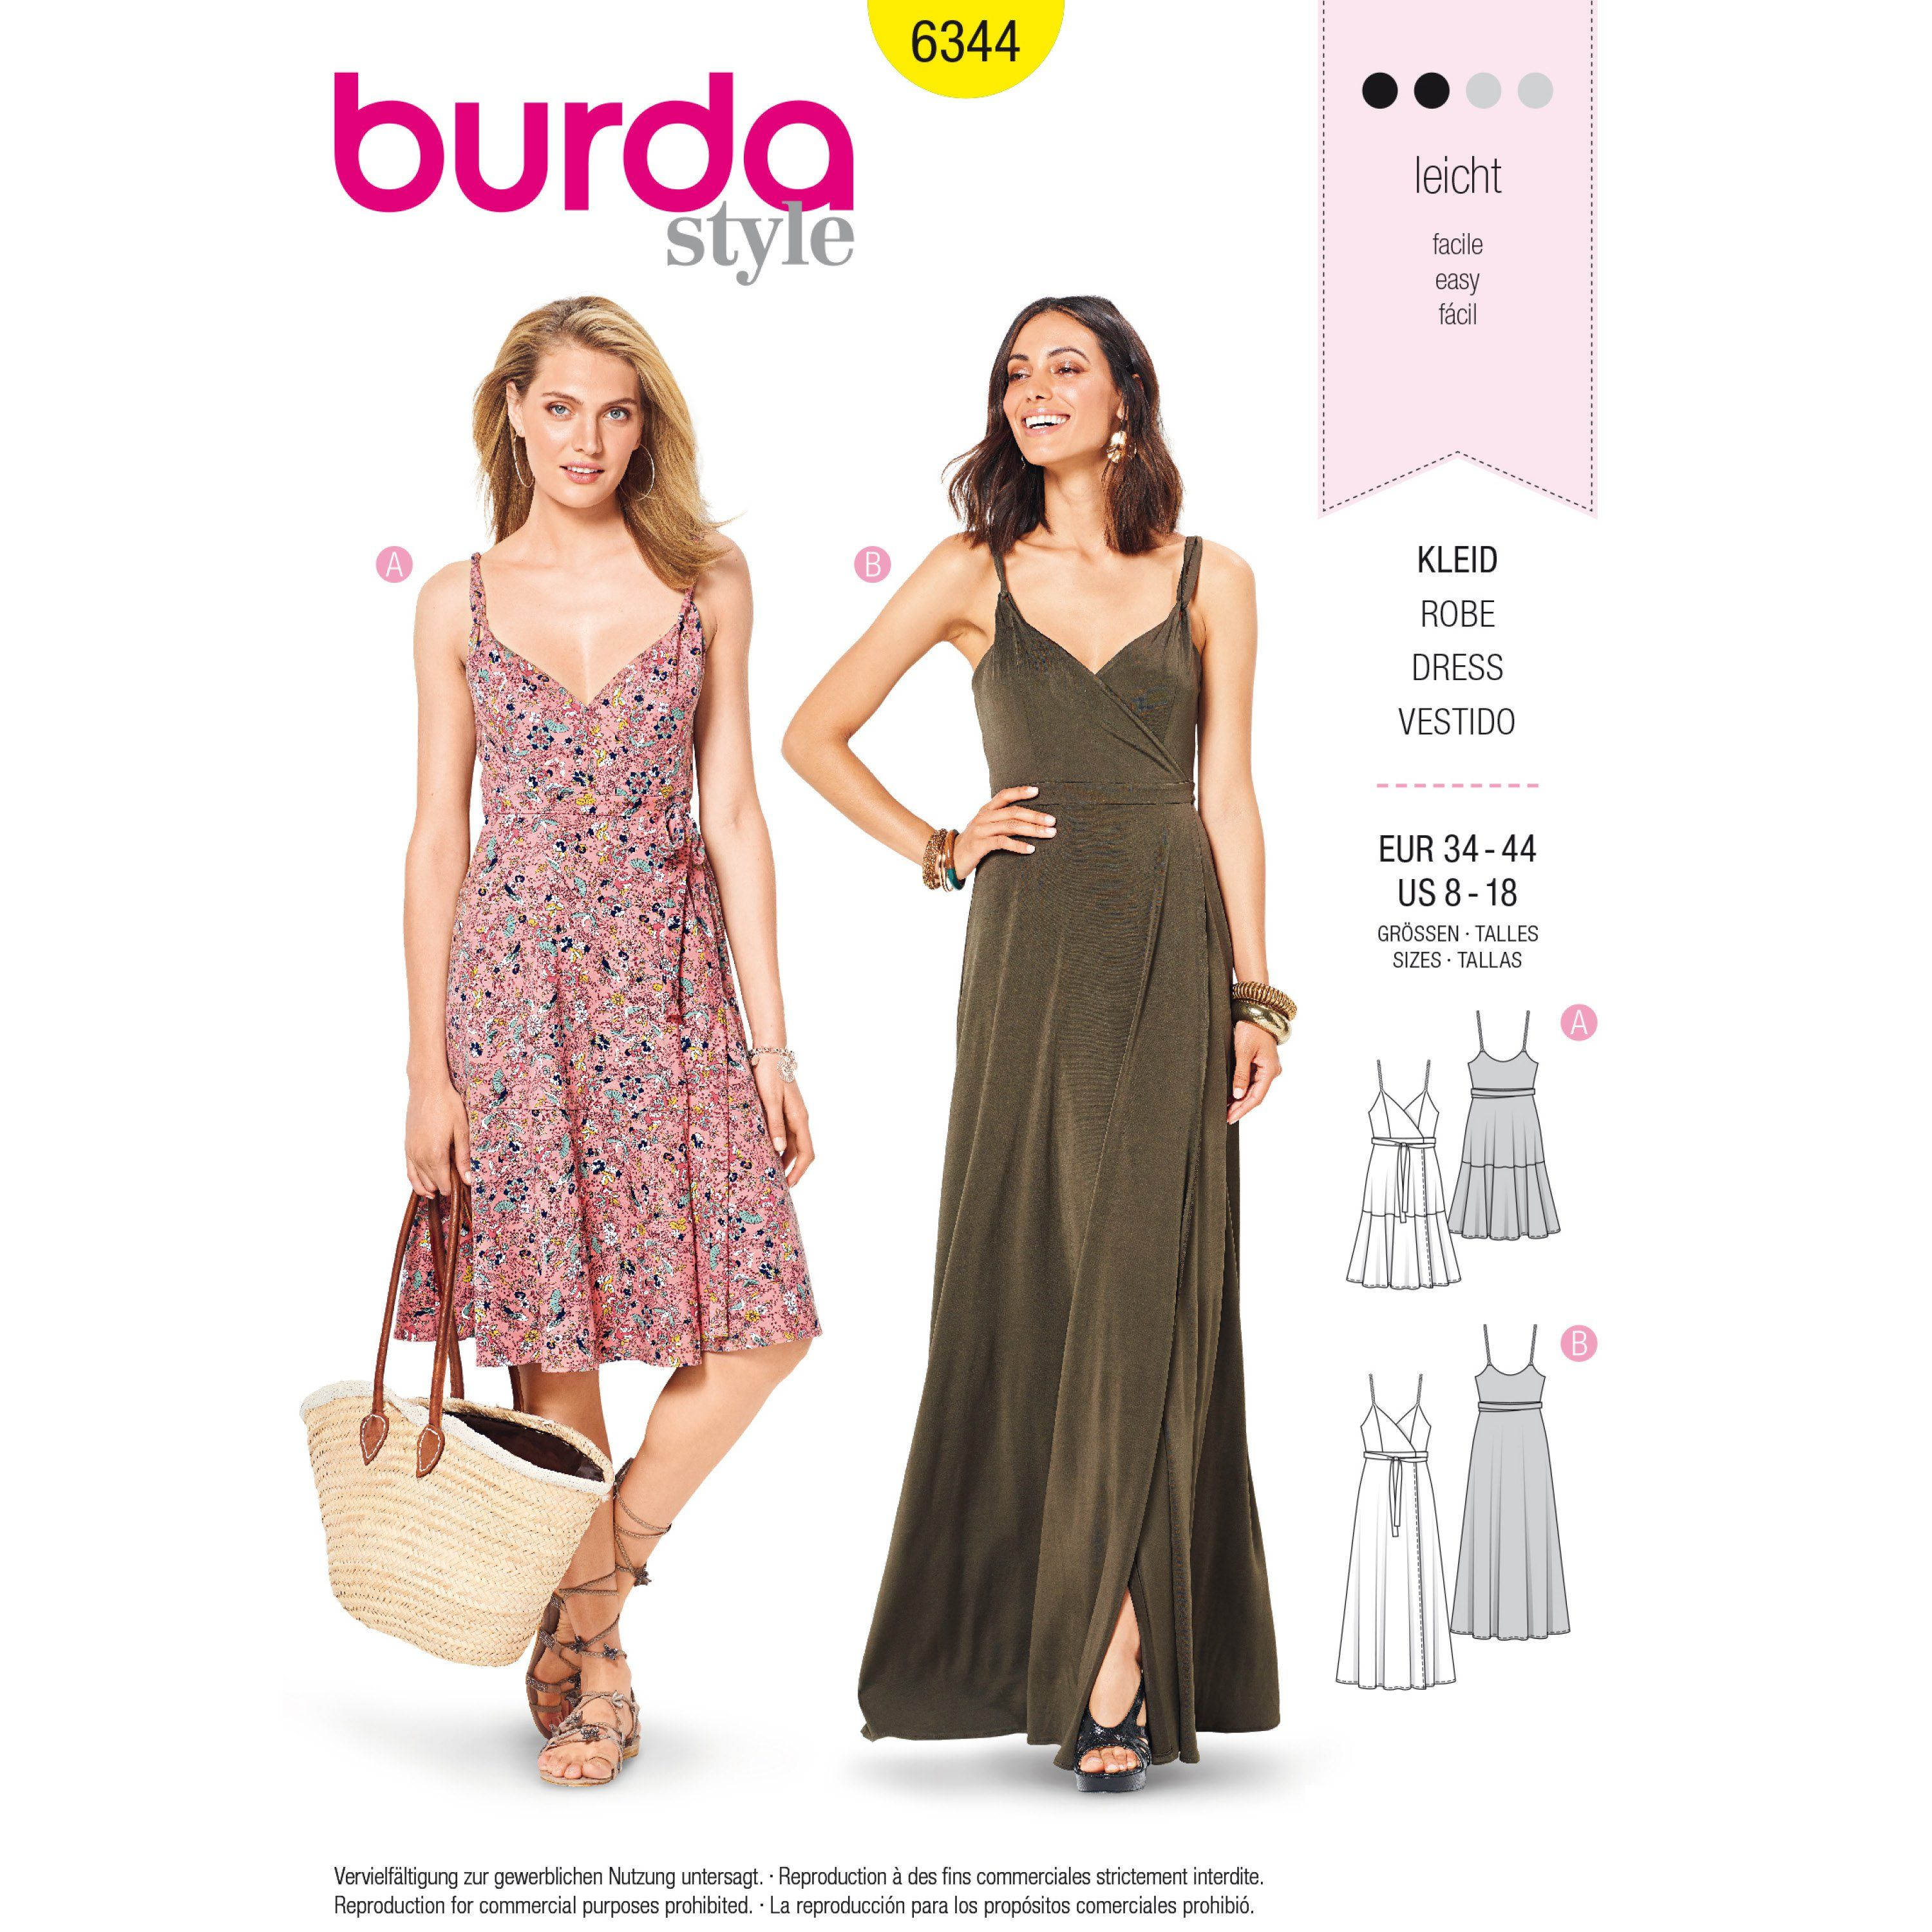 Purchase Burda 6344 Misses Wrap Dress And Read Its Pattern Reviews Find Other Dresses Wrap Dress Sewing Patterns Patterned Bridesmaid Dresses Sewing Dresses [ 3000 x 3000 Pixel ]